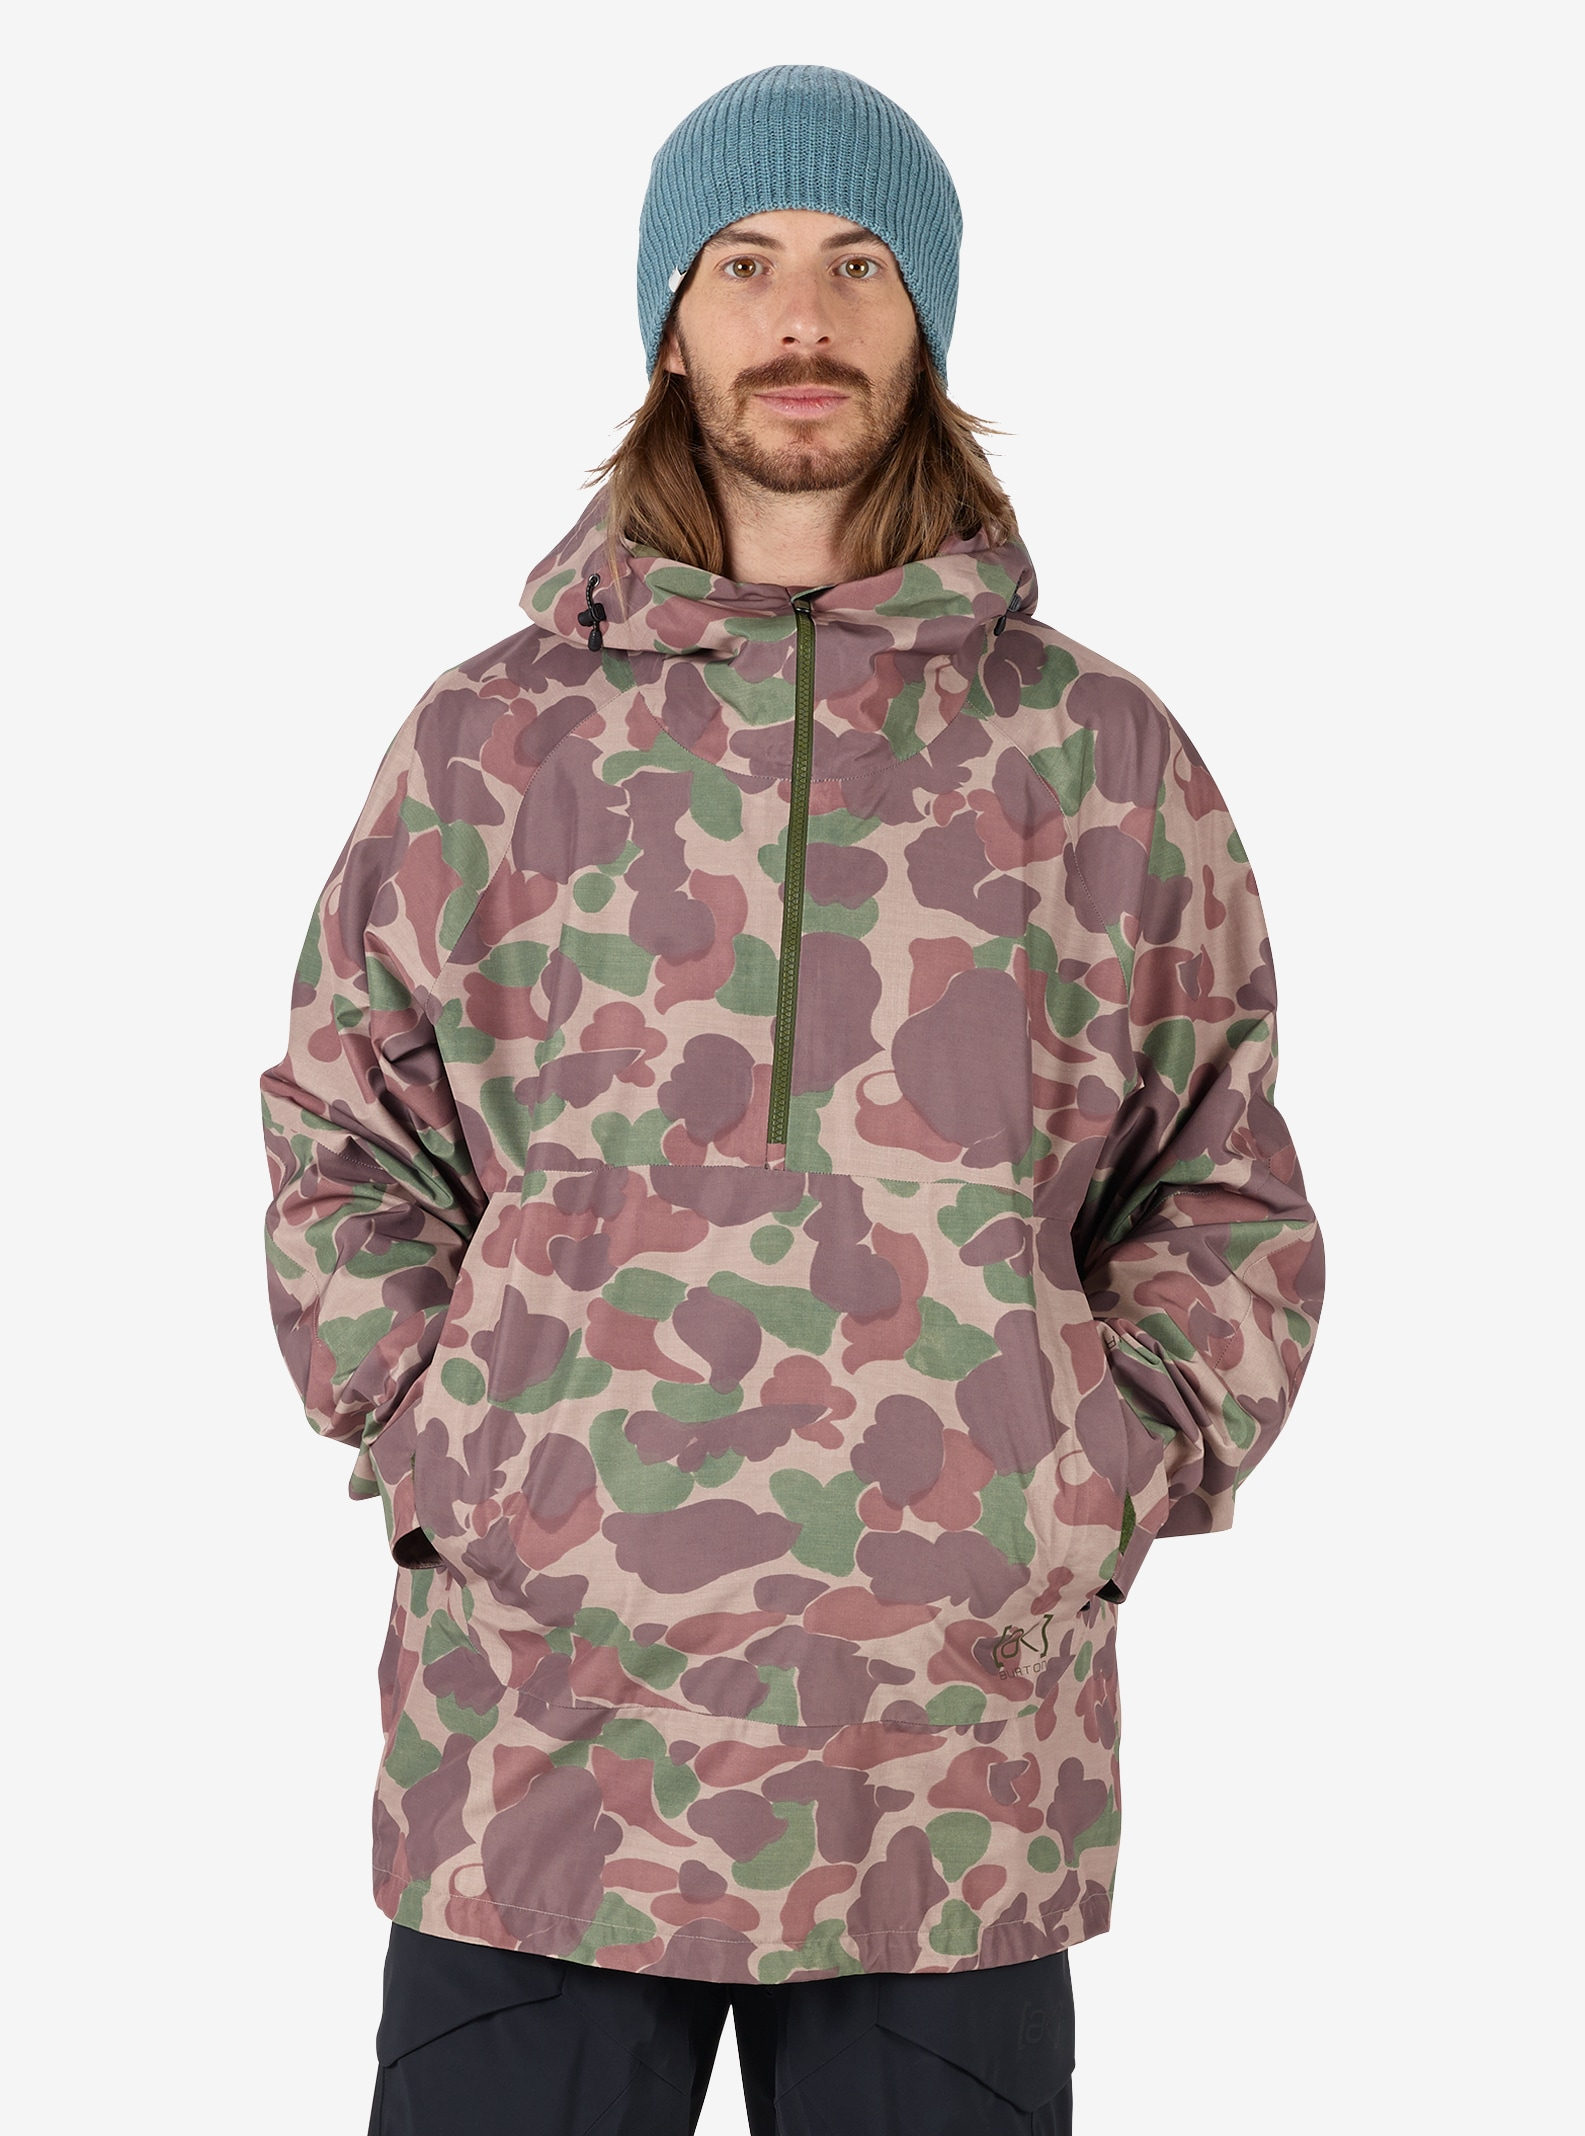 Men's Burton [ak] GORE‑TEX® Velocity Anorak Jacket shown in Kodiak Camo